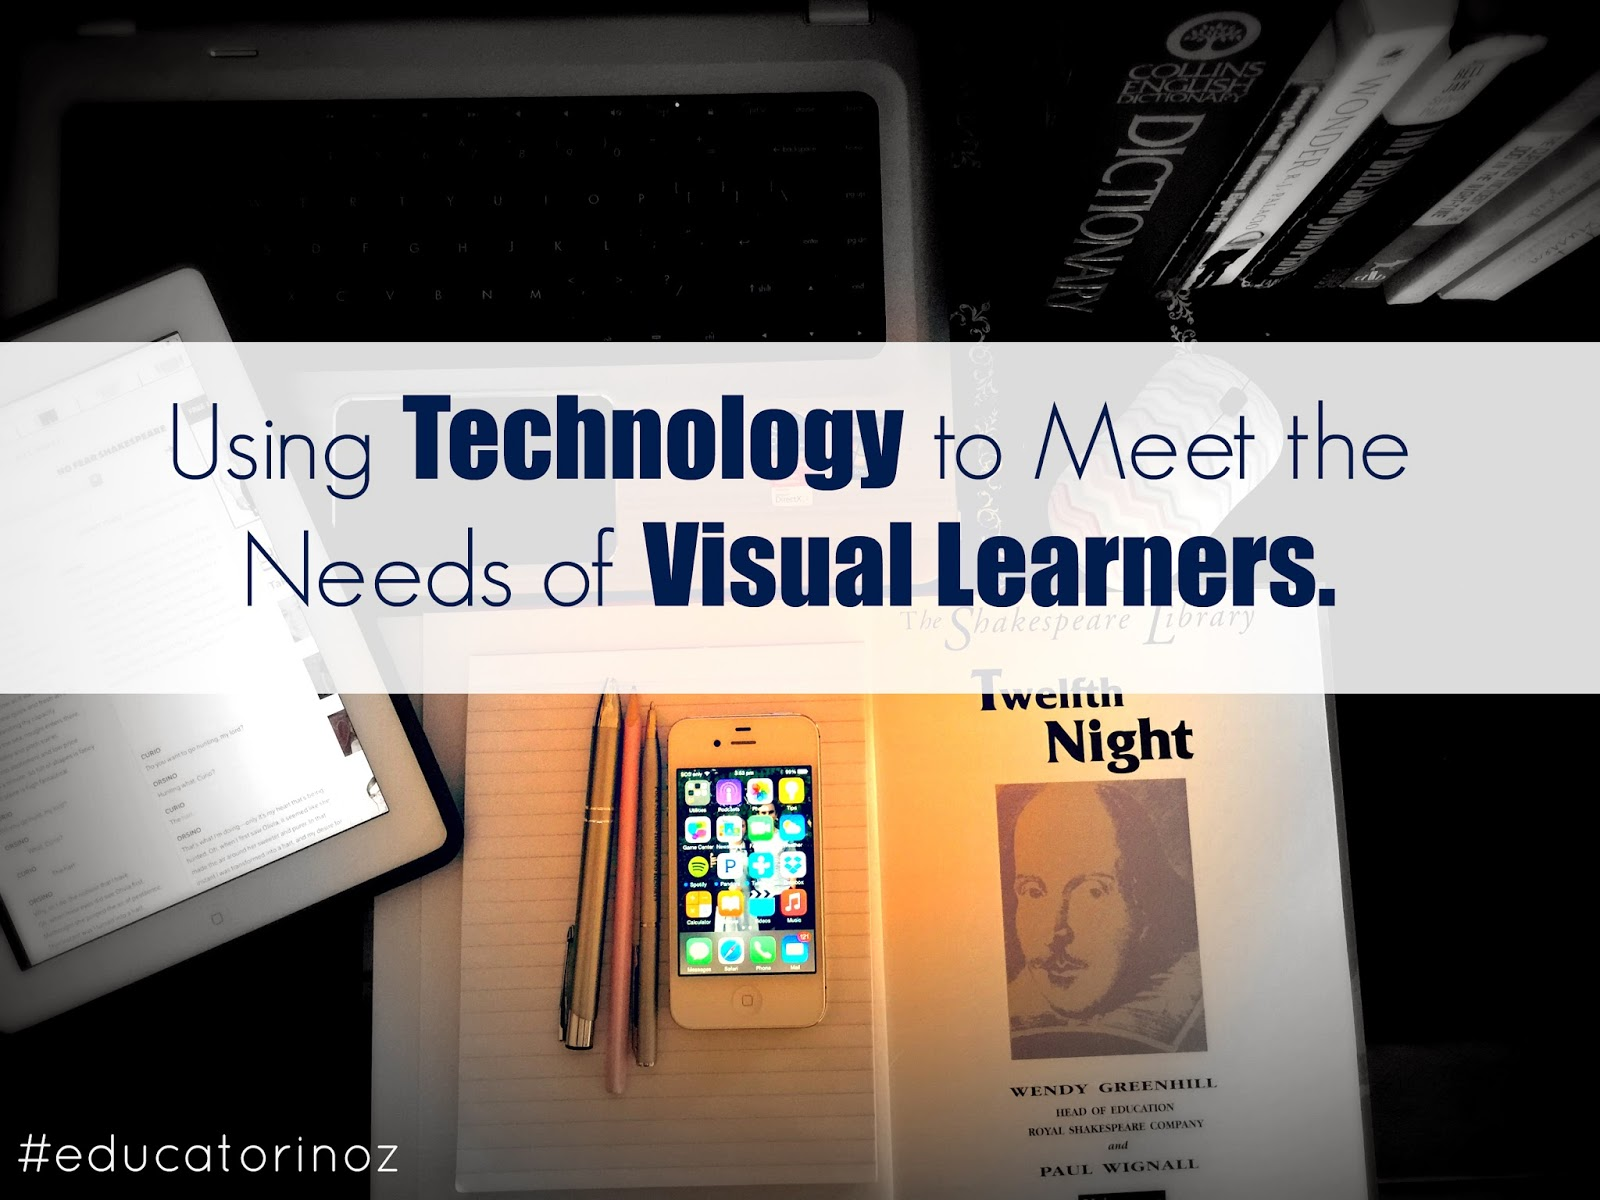 Using Technology to Meet the Needs of Visual Learners #educatorinoz